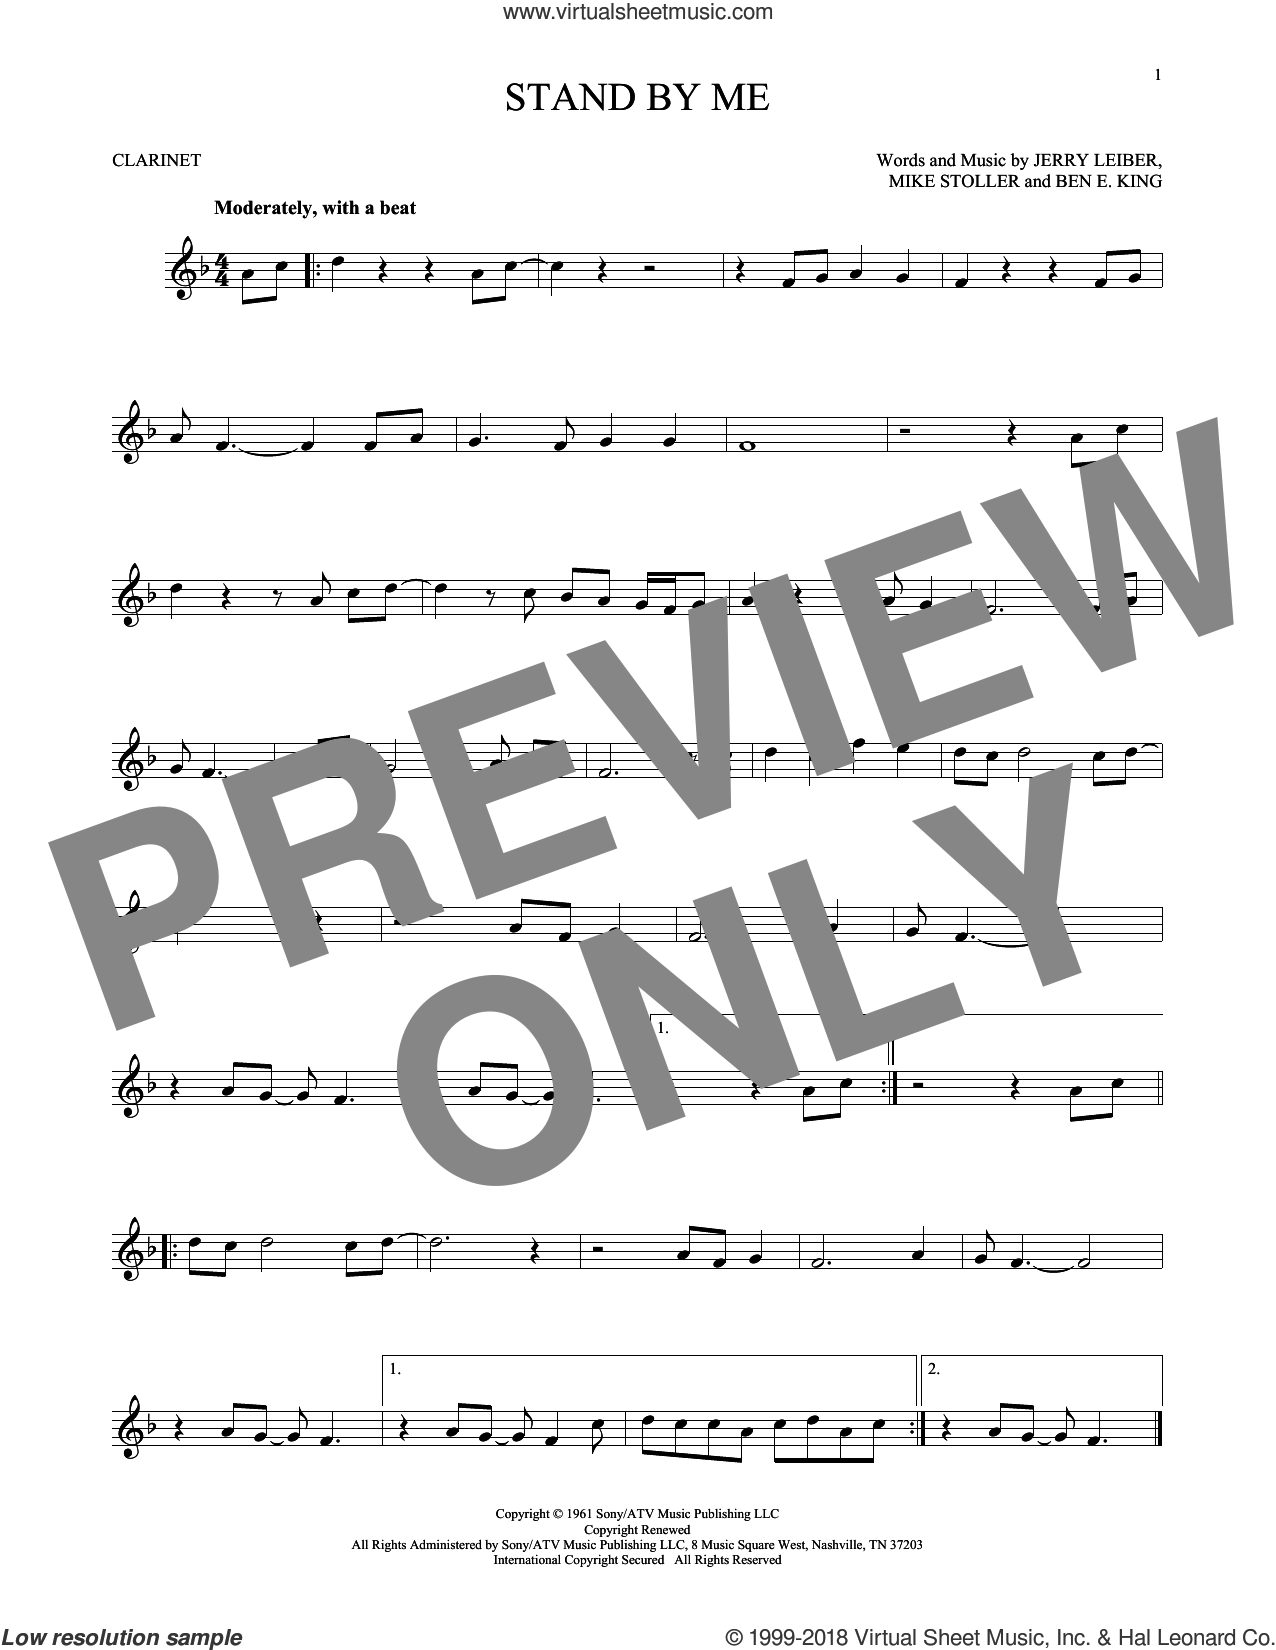 Stand By Me sheet music for clarinet solo by Ben E. King, Jerry Leiber and Mike Stoller, intermediate skill level